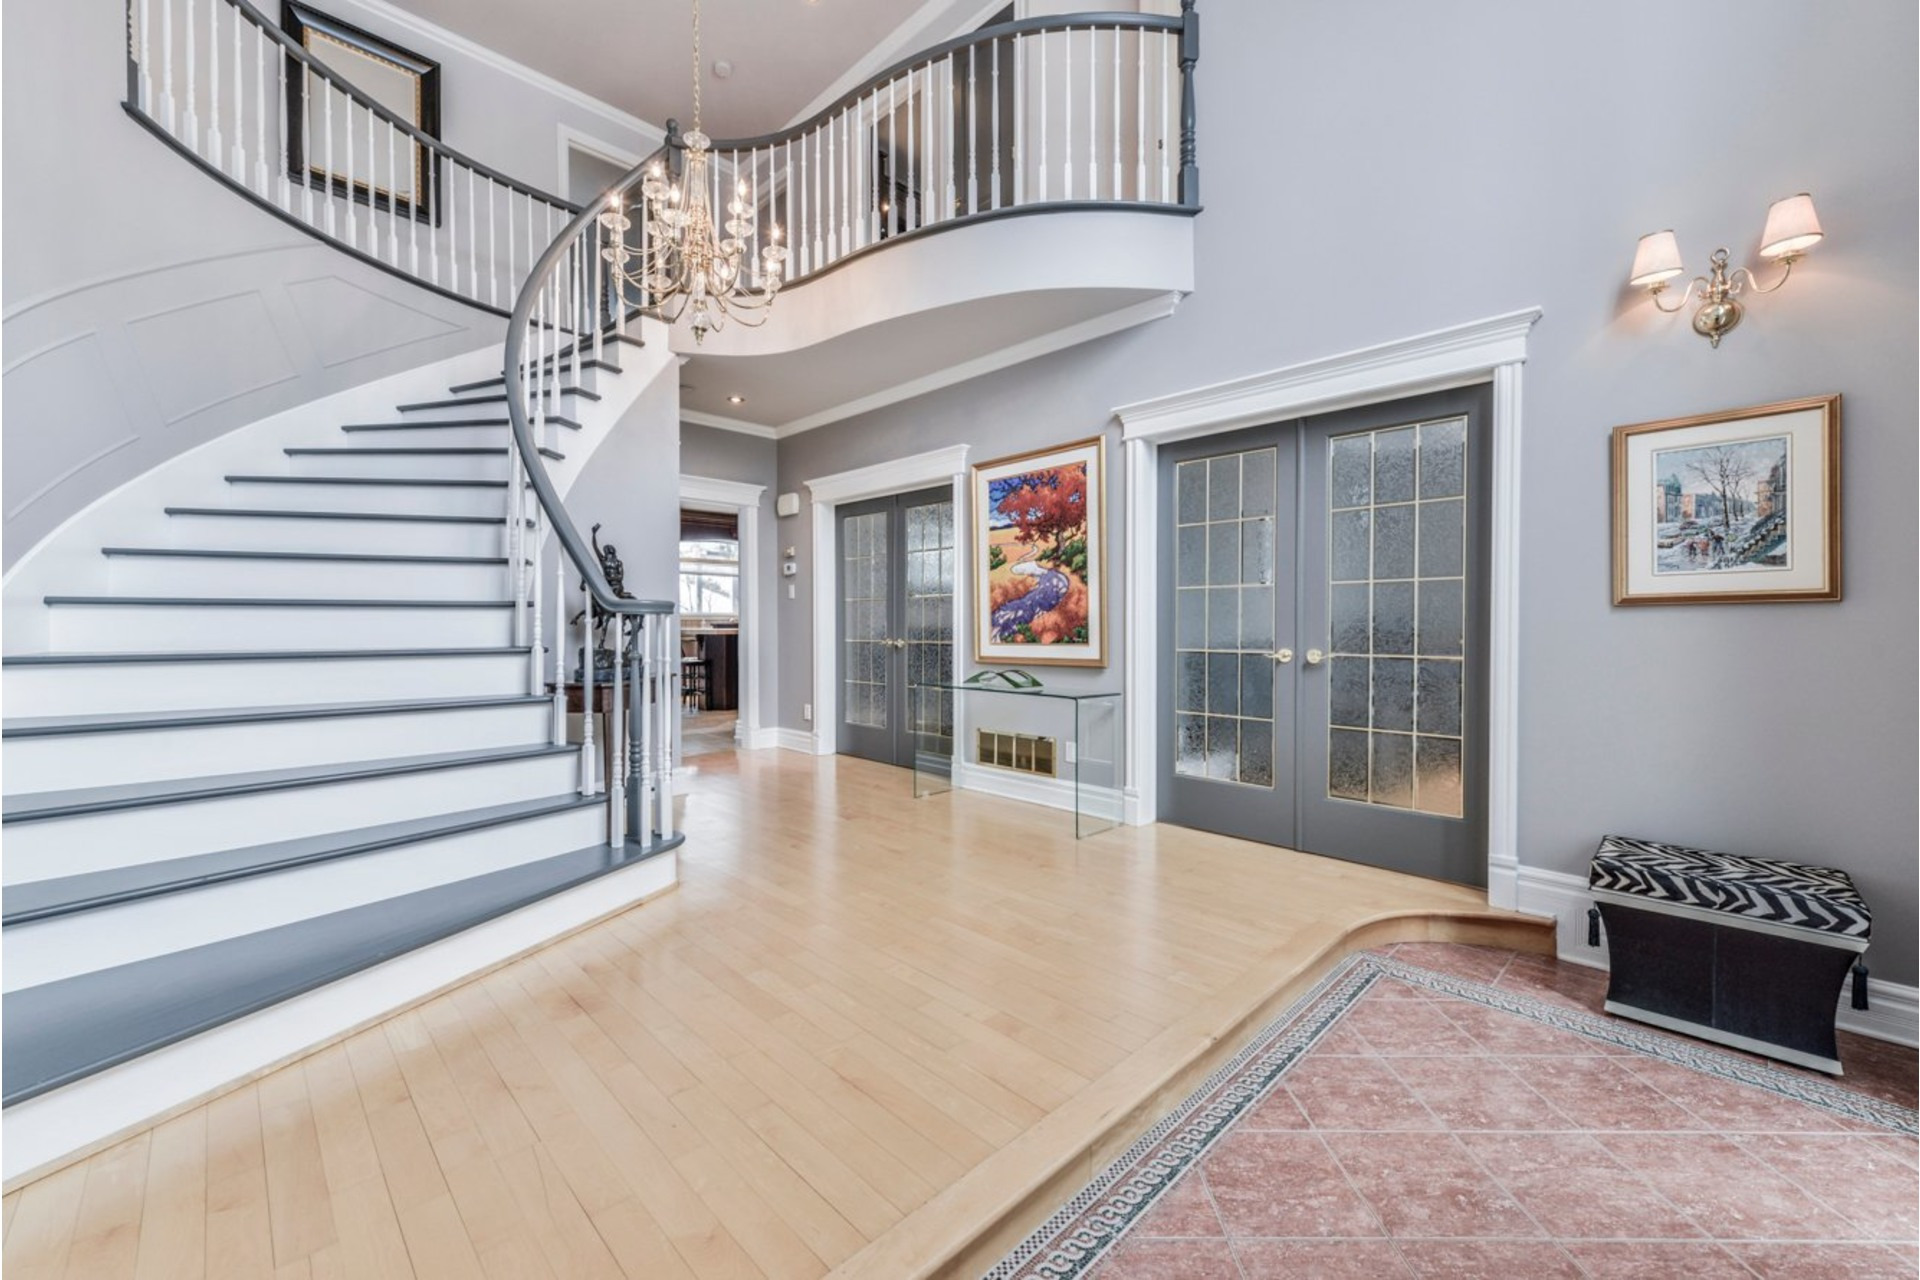 image 6 - House For sale Brossard - 17 rooms